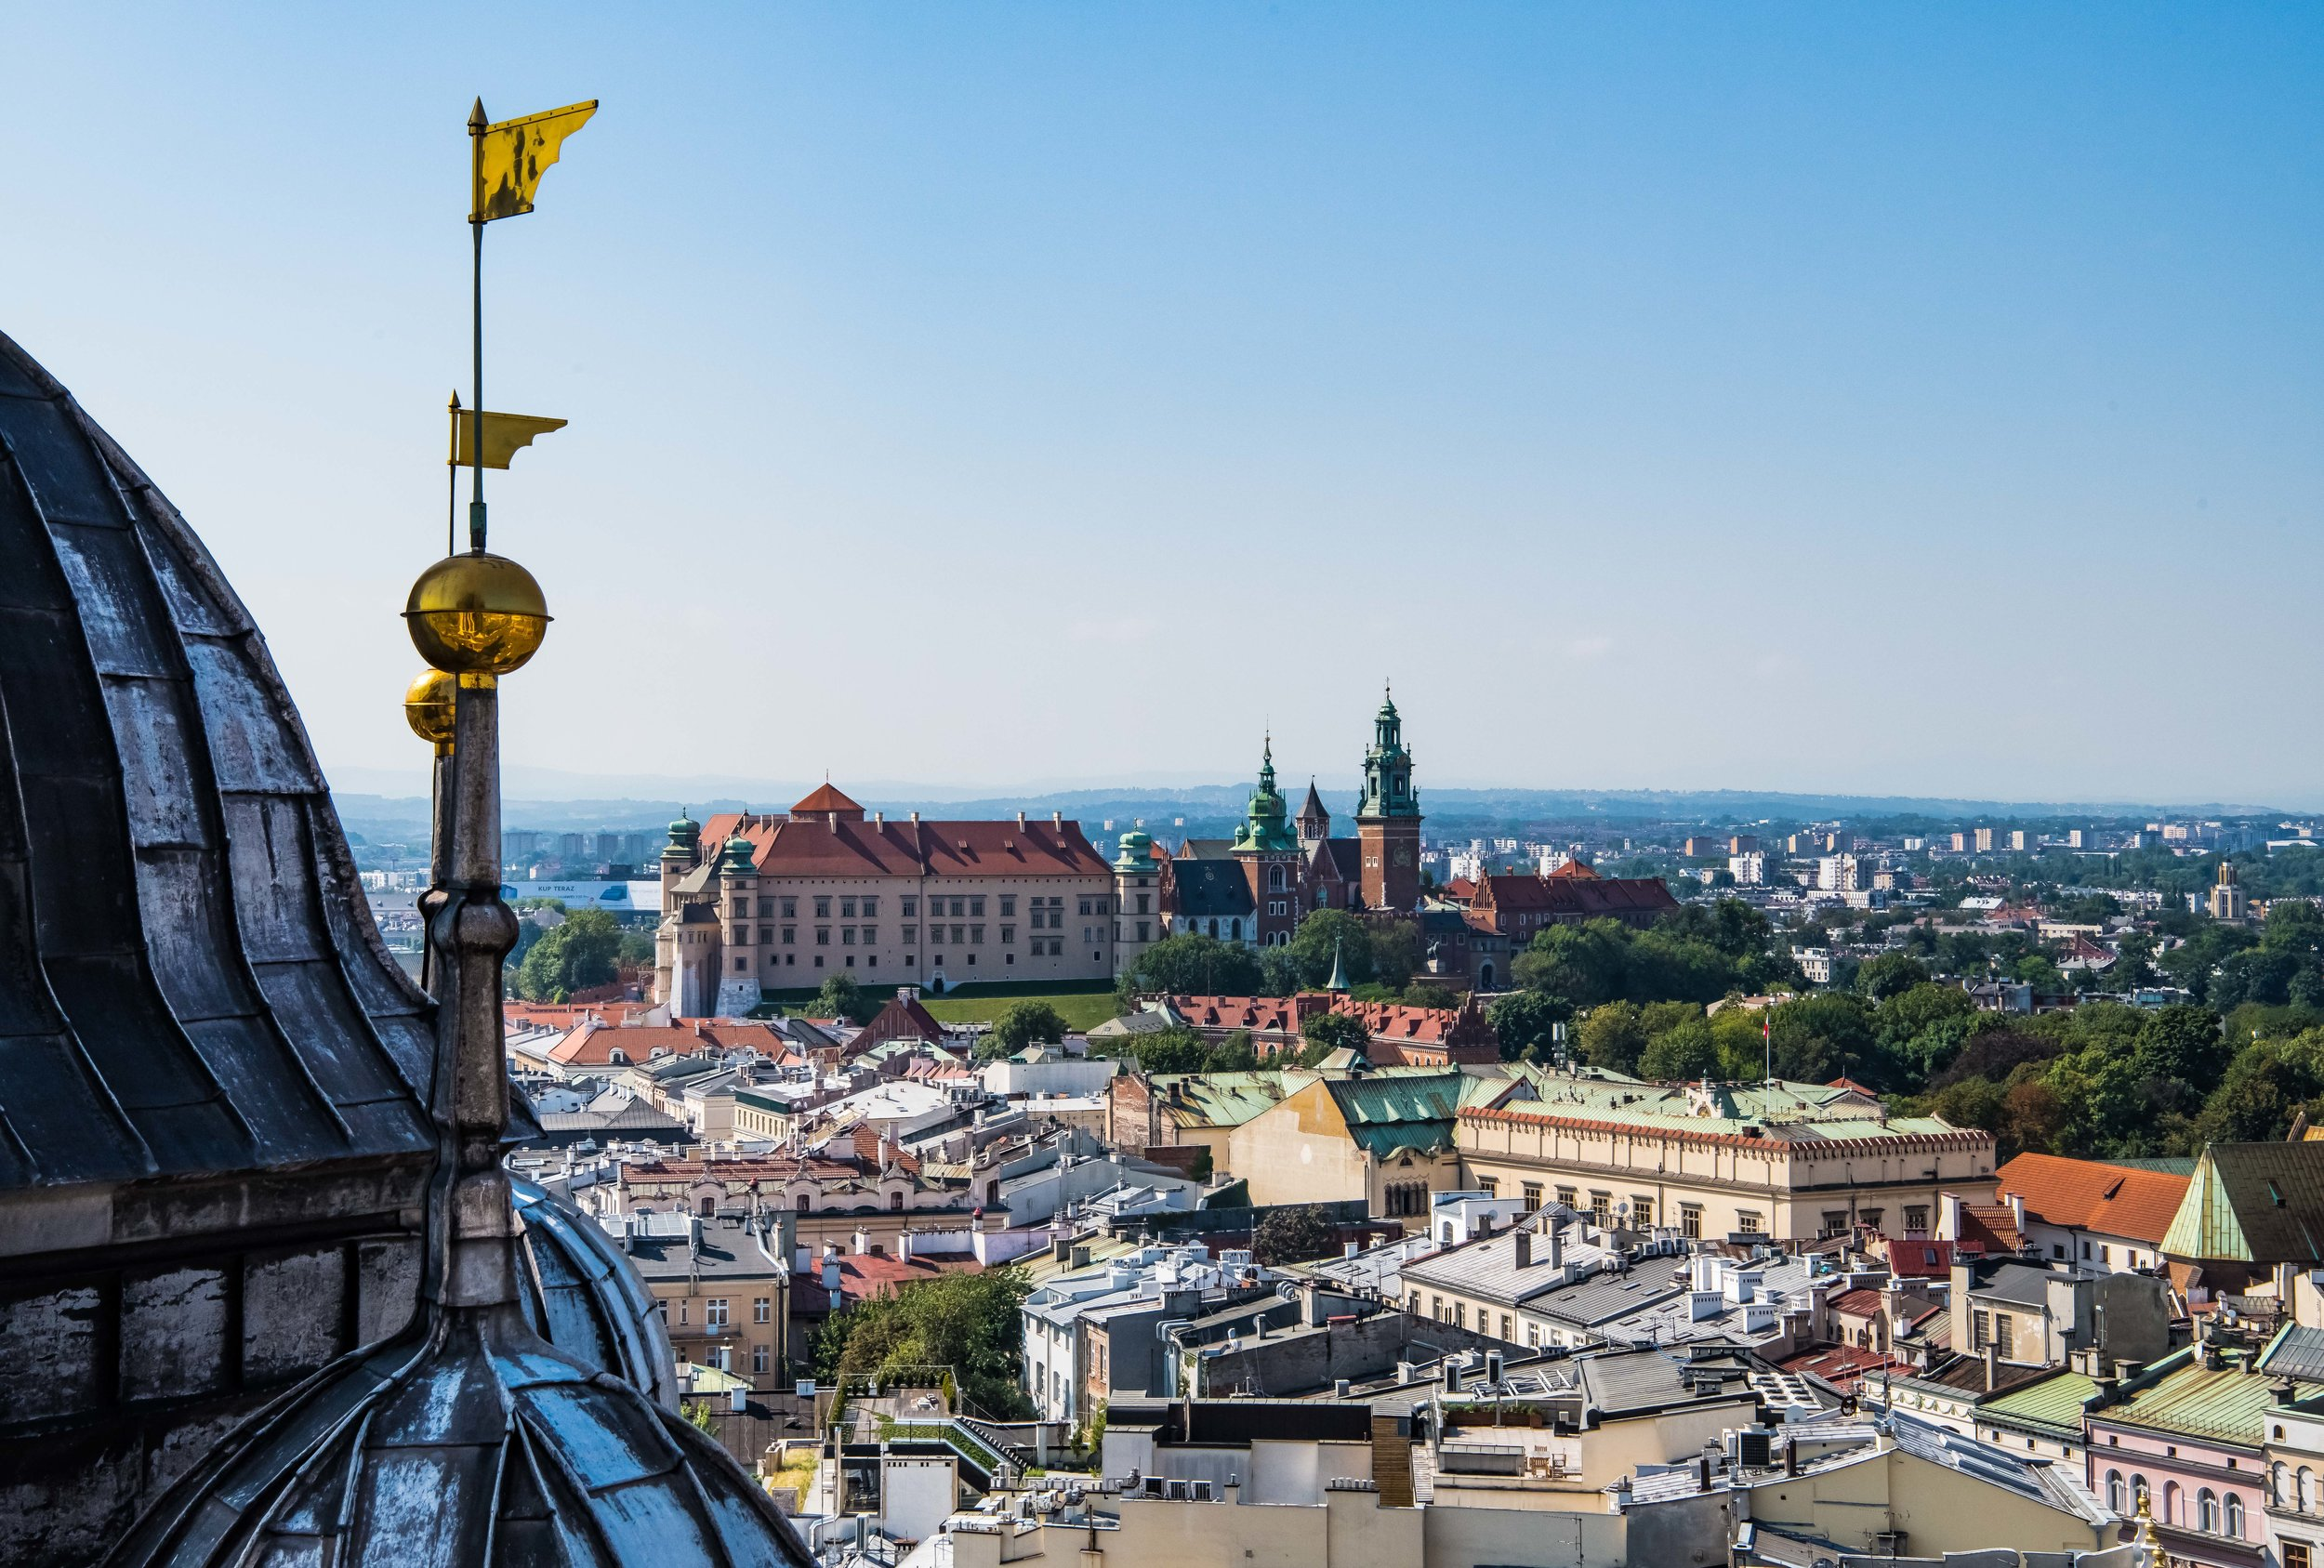 Wawel Castle from the tower of St Mary's Bascilica